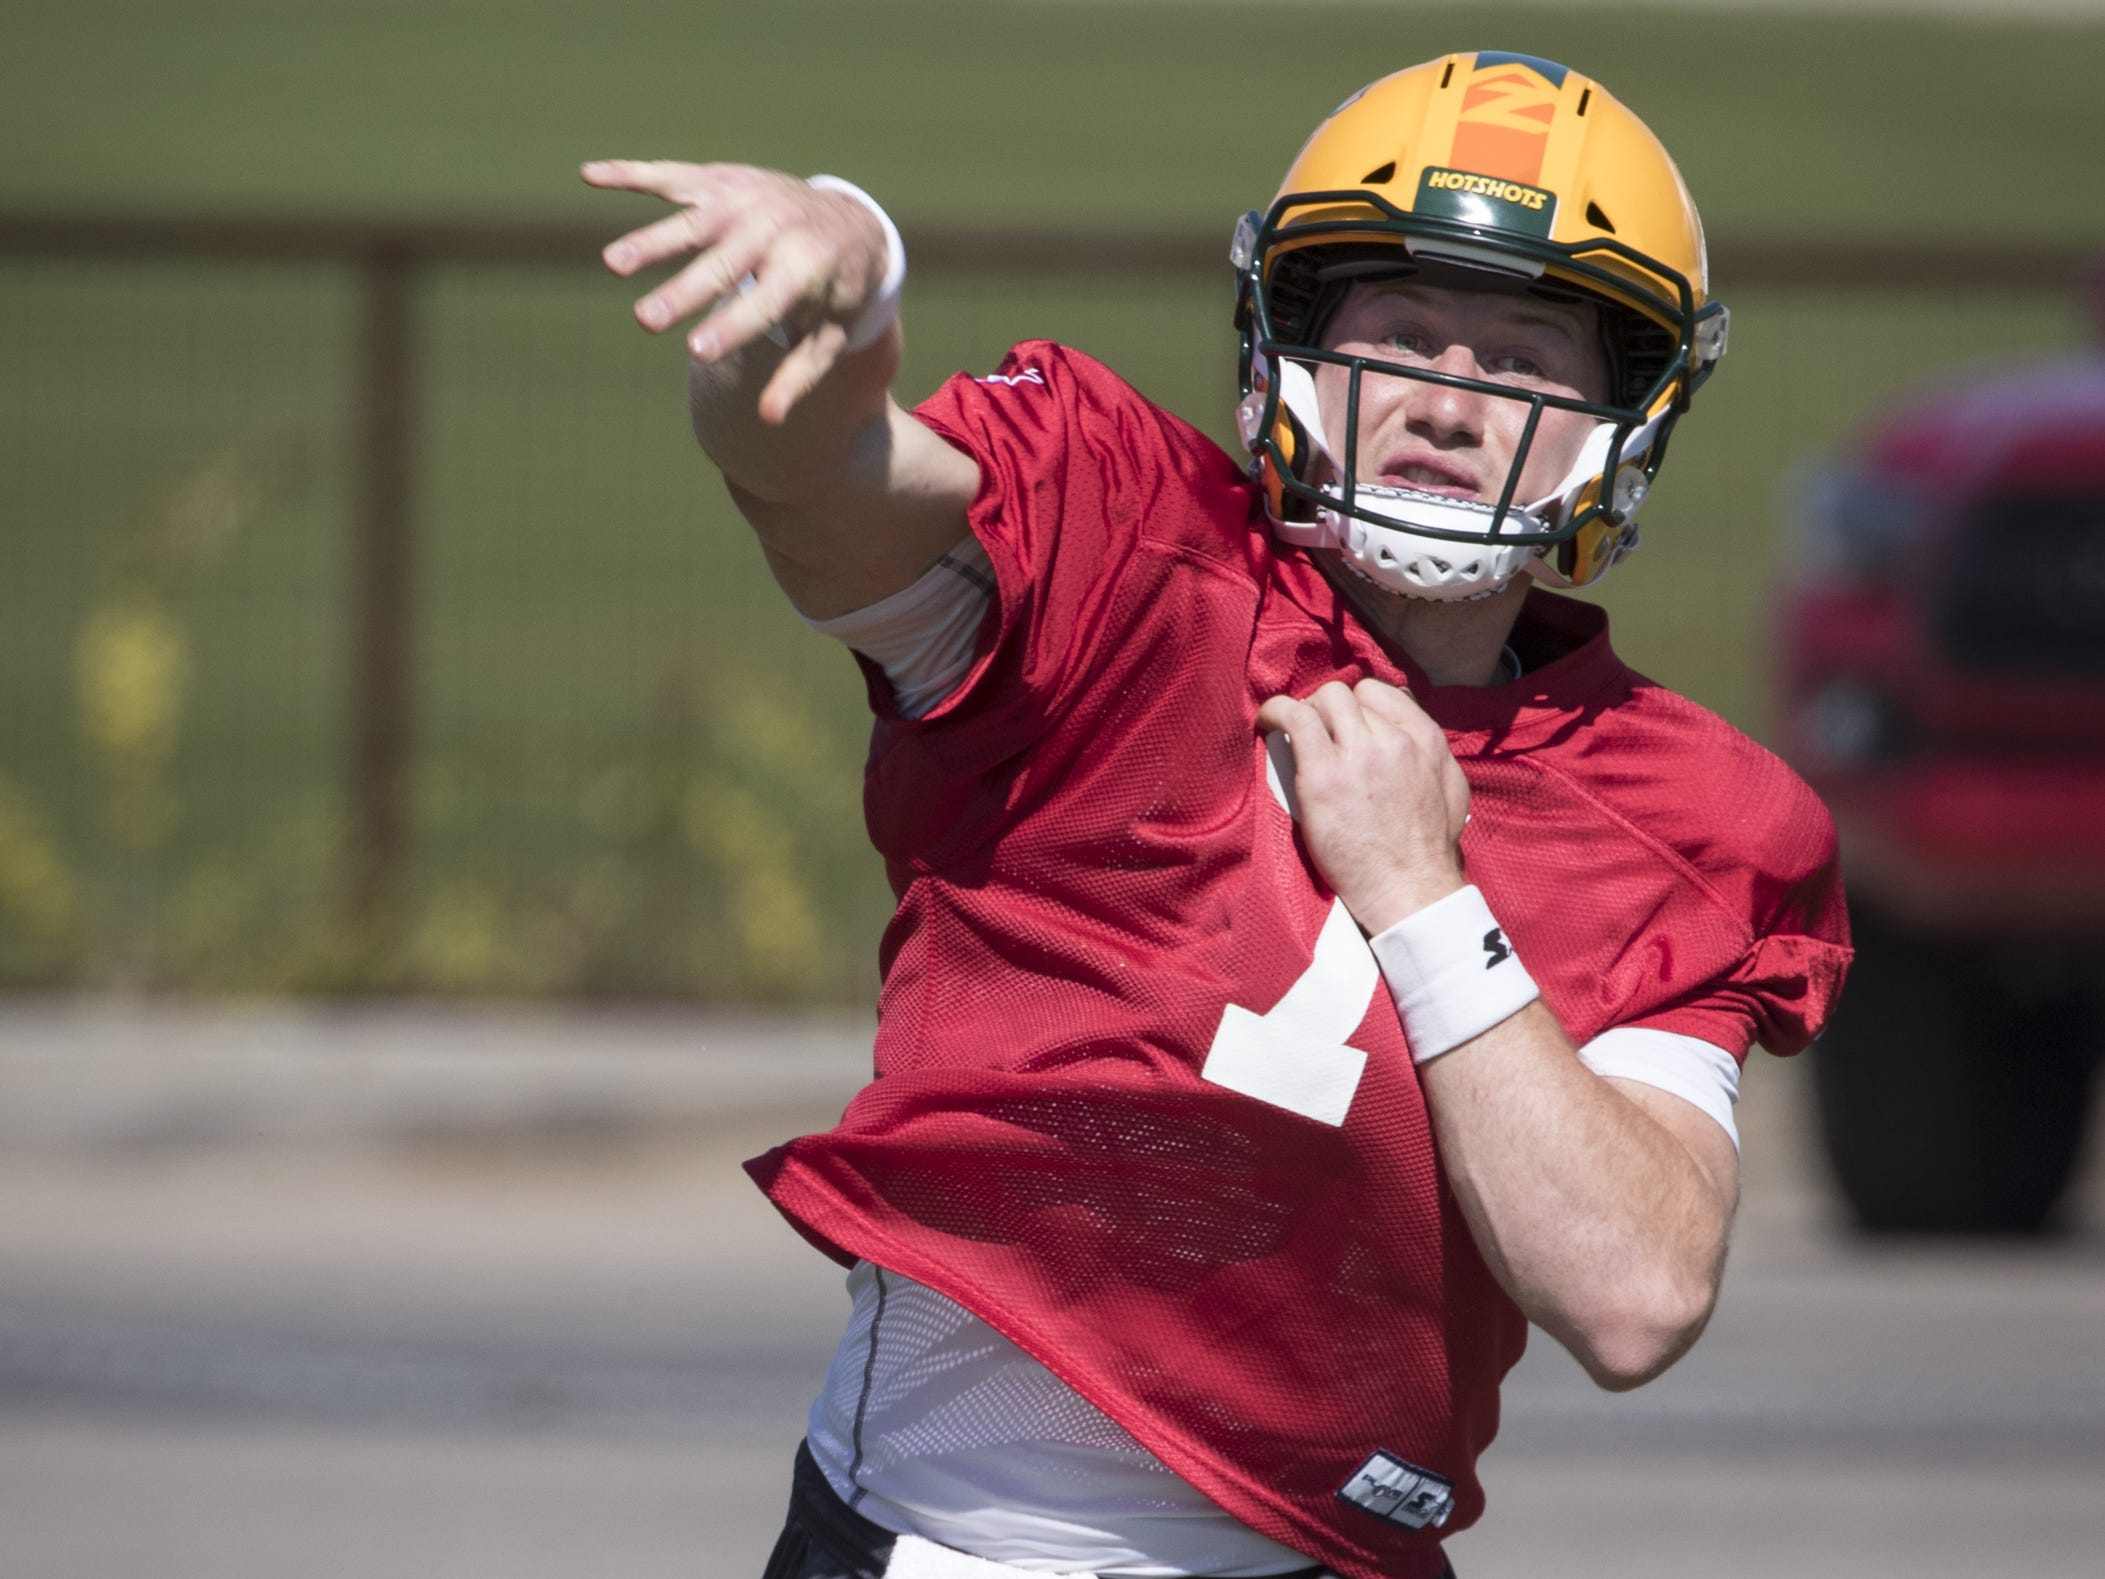 John Wolford (QB, #7) throws a pass during practice, February 28, 2019, at State Farm Stadium (Great Lawn practice field), 1 Cardinals Drive, Glendale.